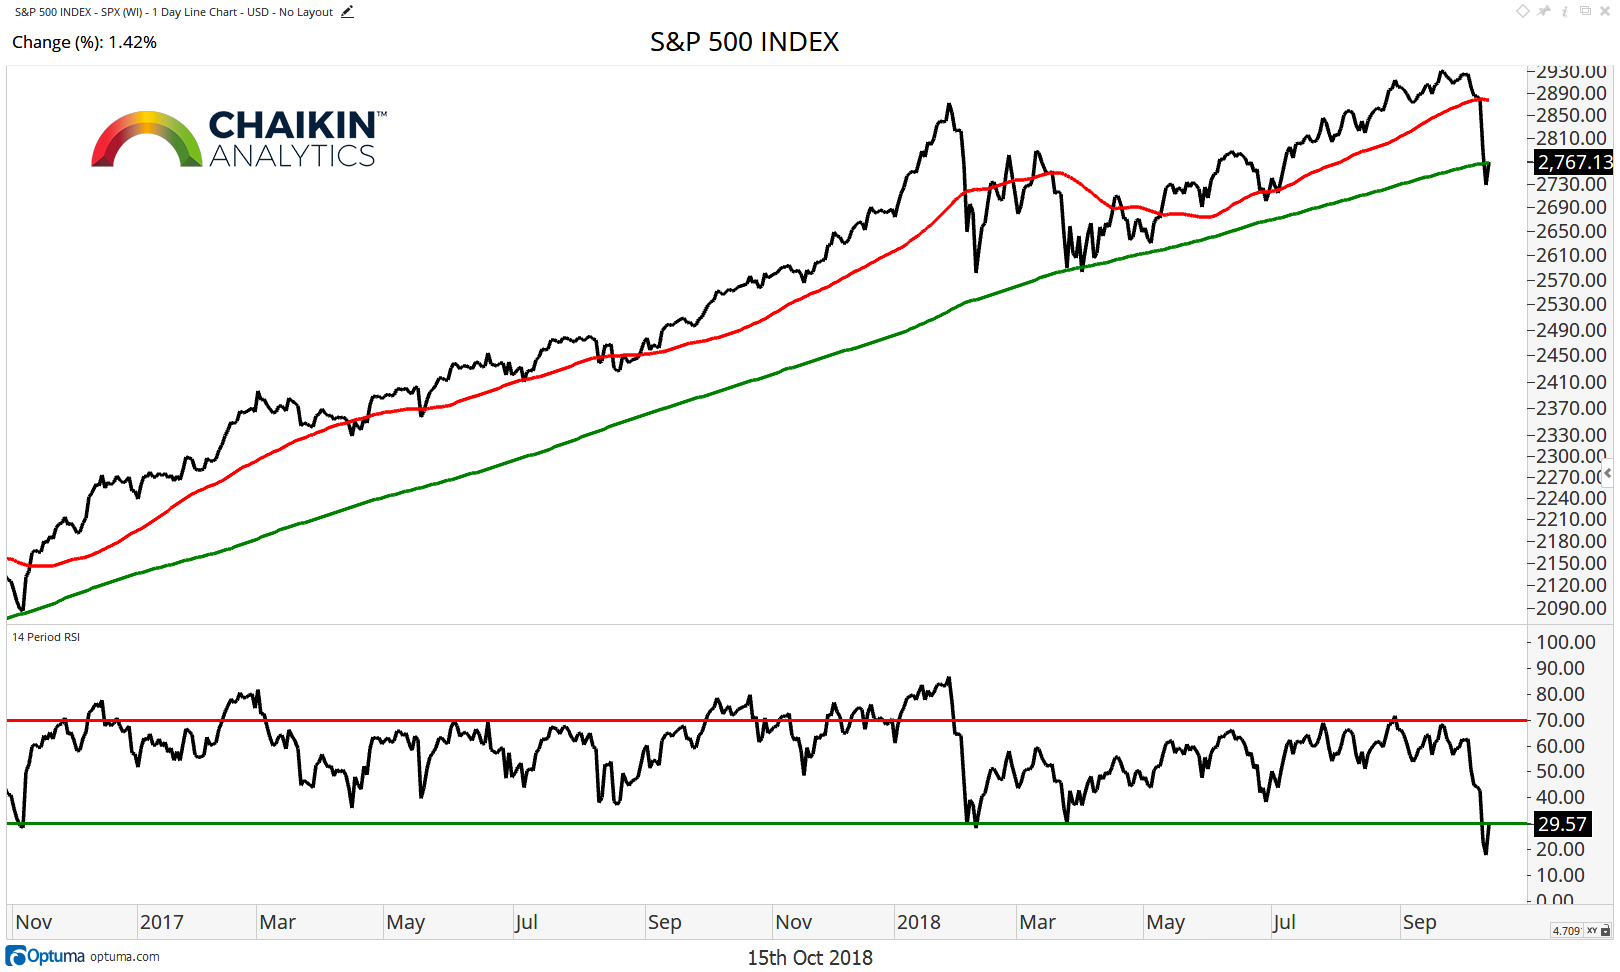 s&p 500 investing chart analysis correction lows bottom october